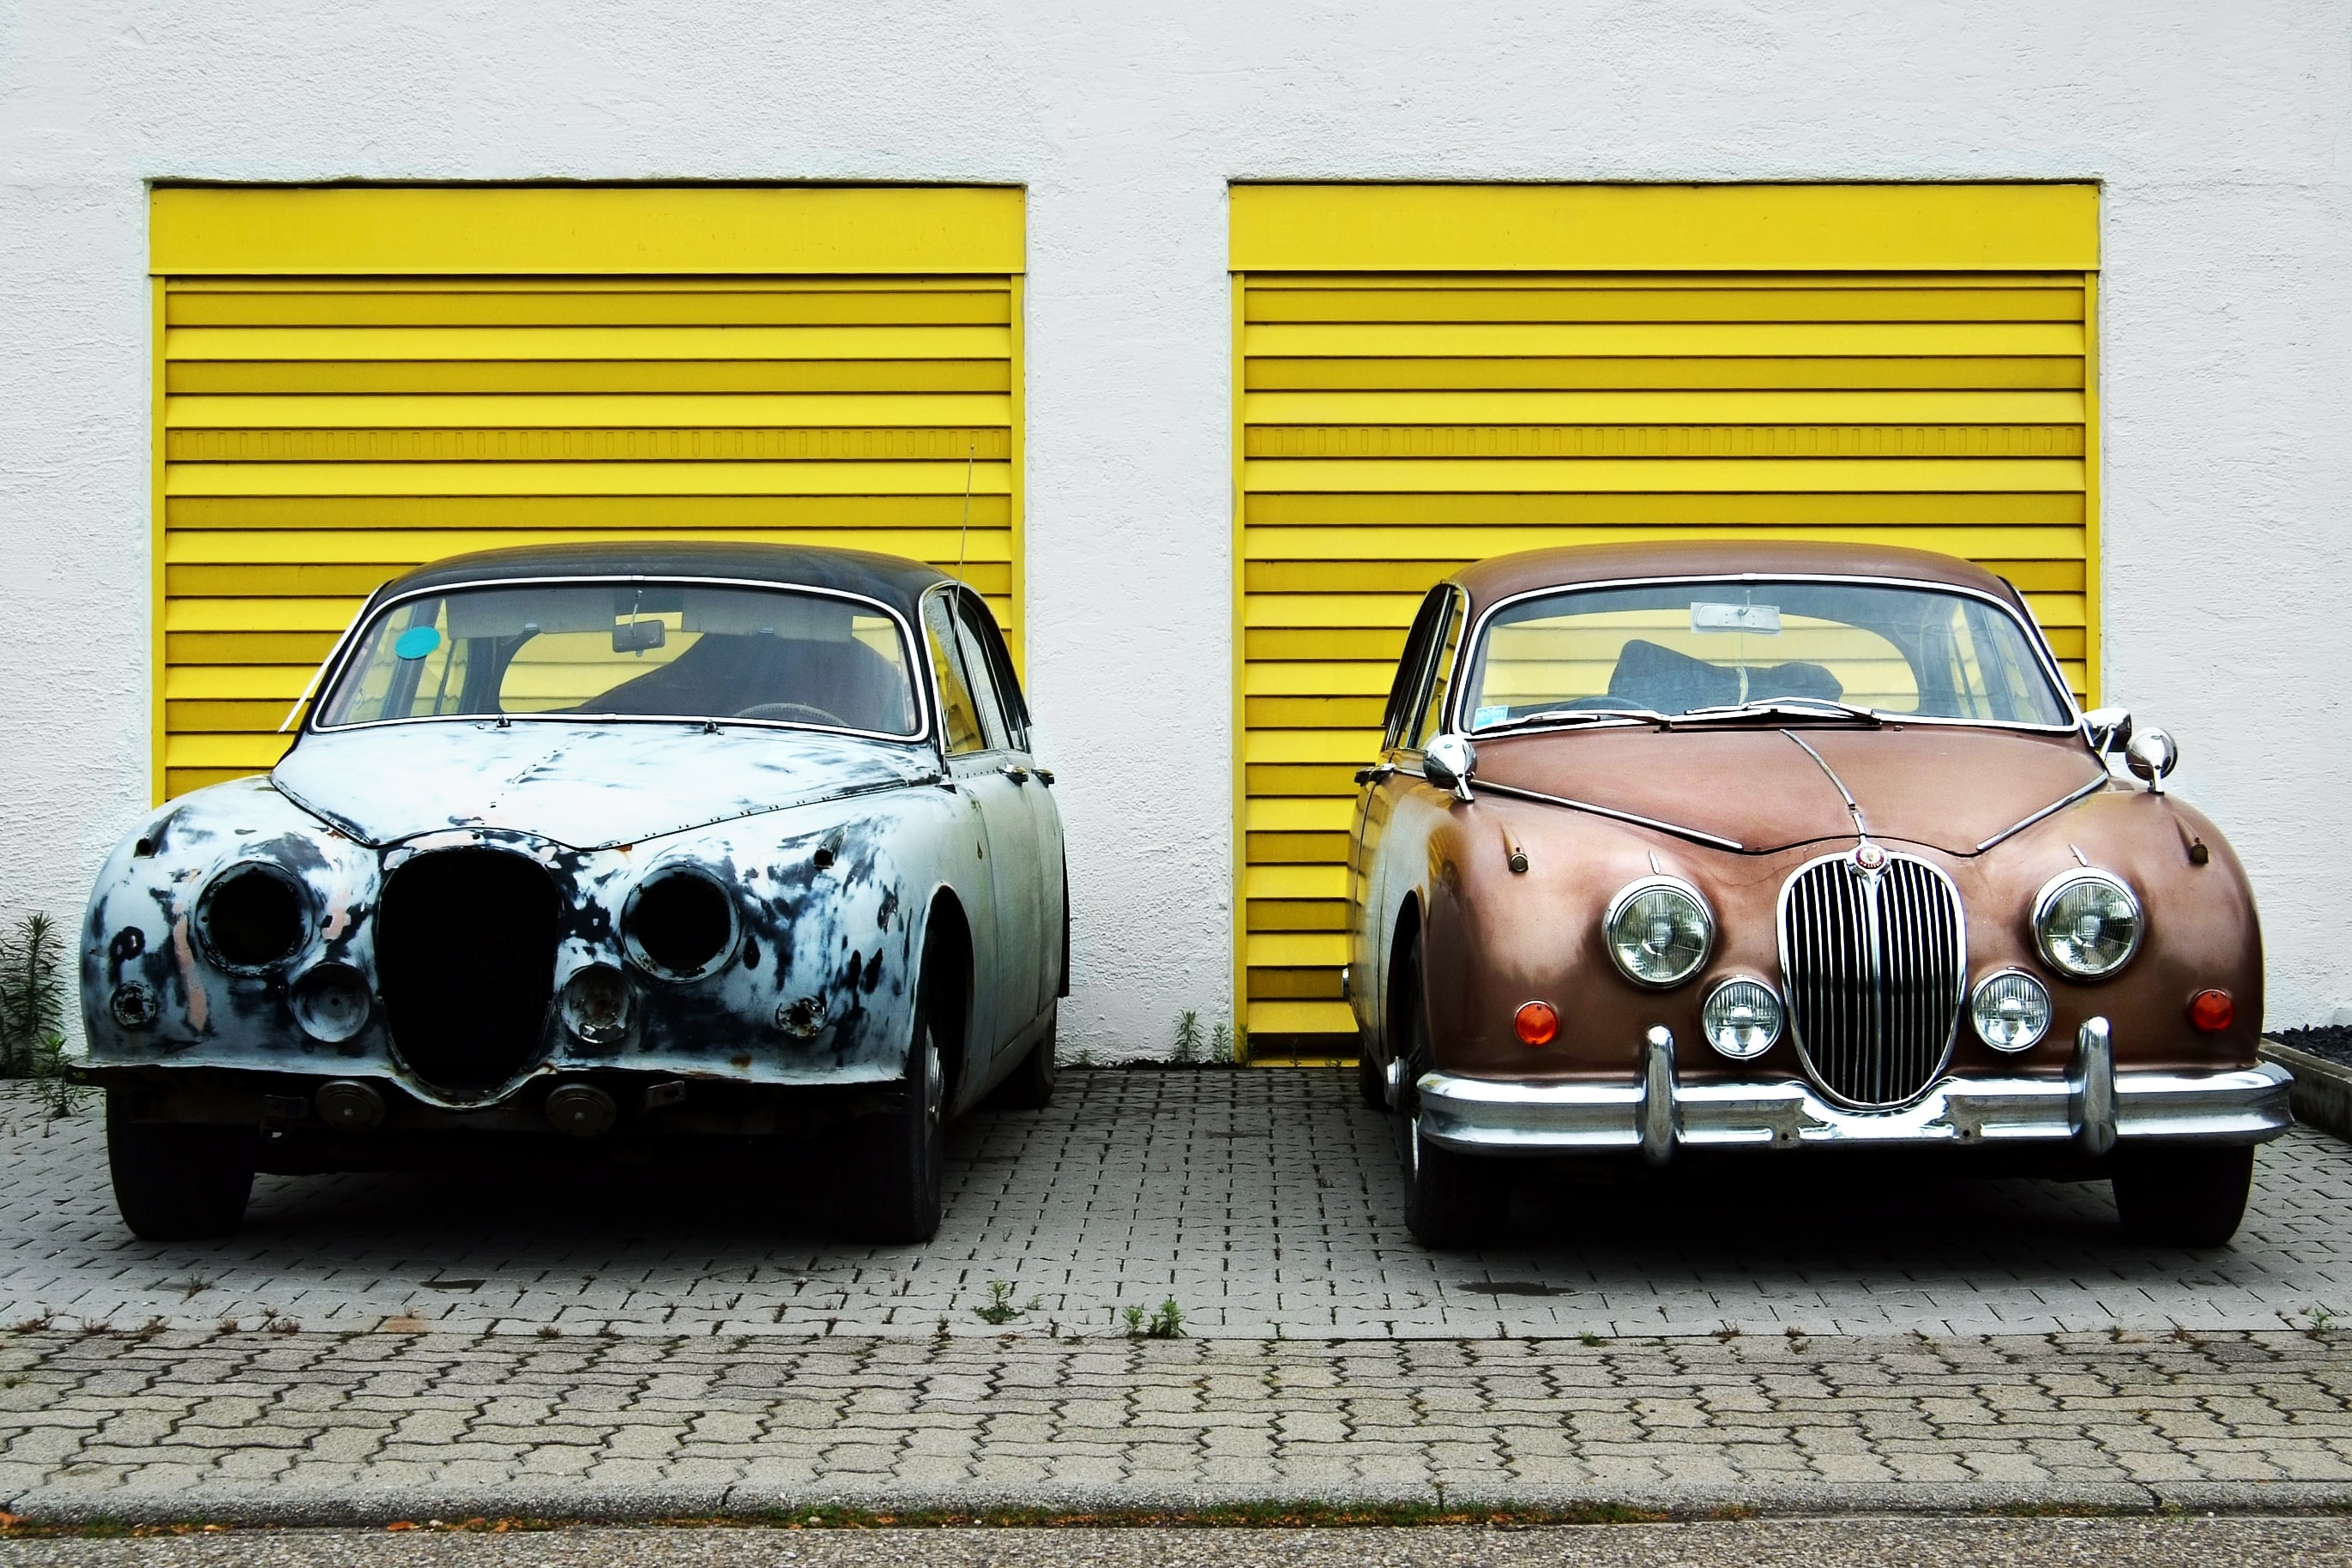 two cars in front of shutter doors